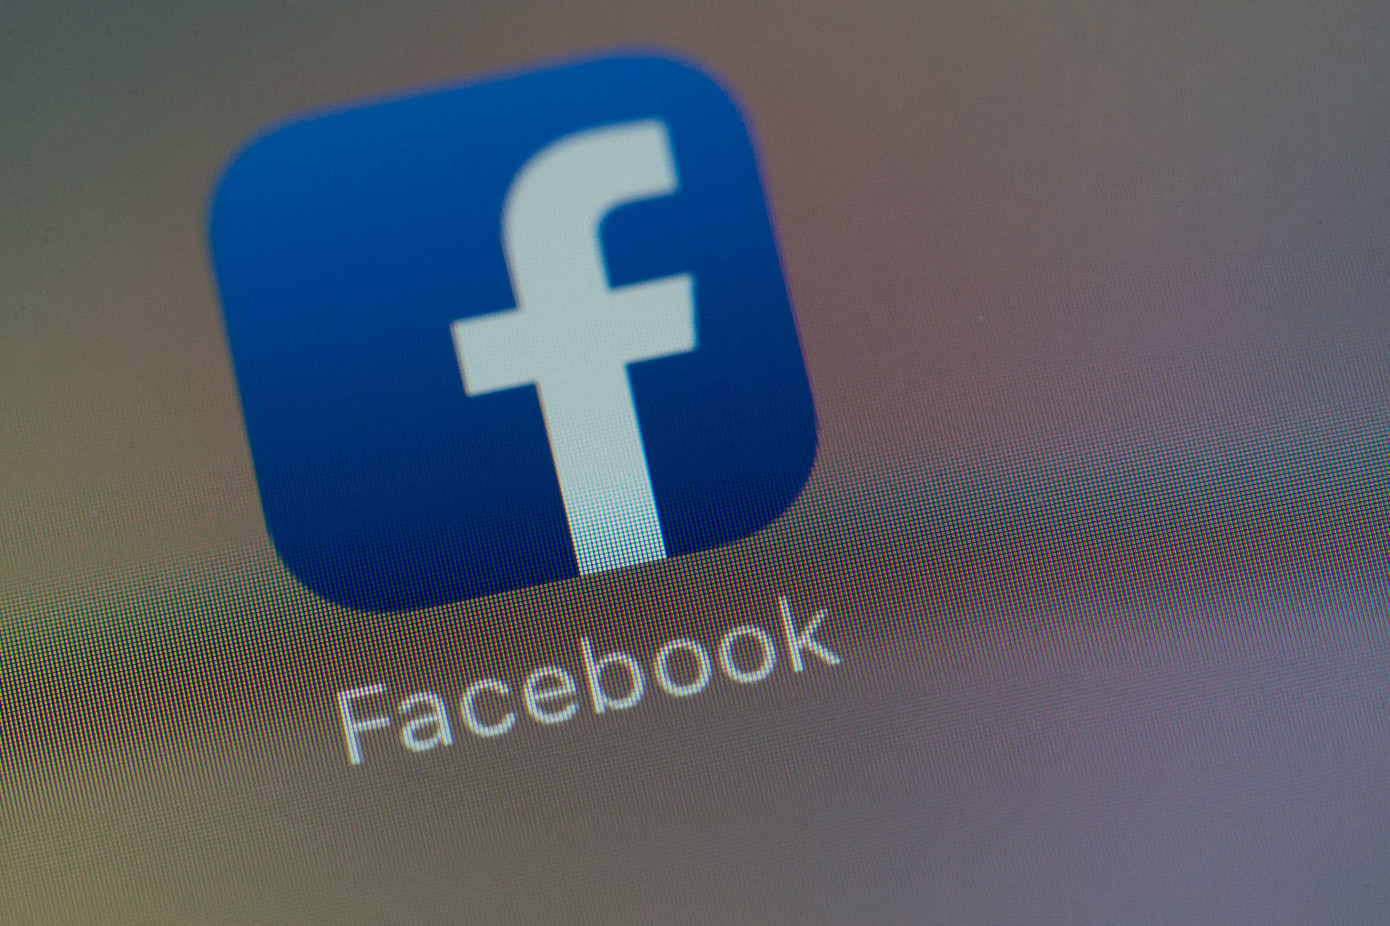 Facebook commits $100M to support local news orgs hit by COVID-19 crisis